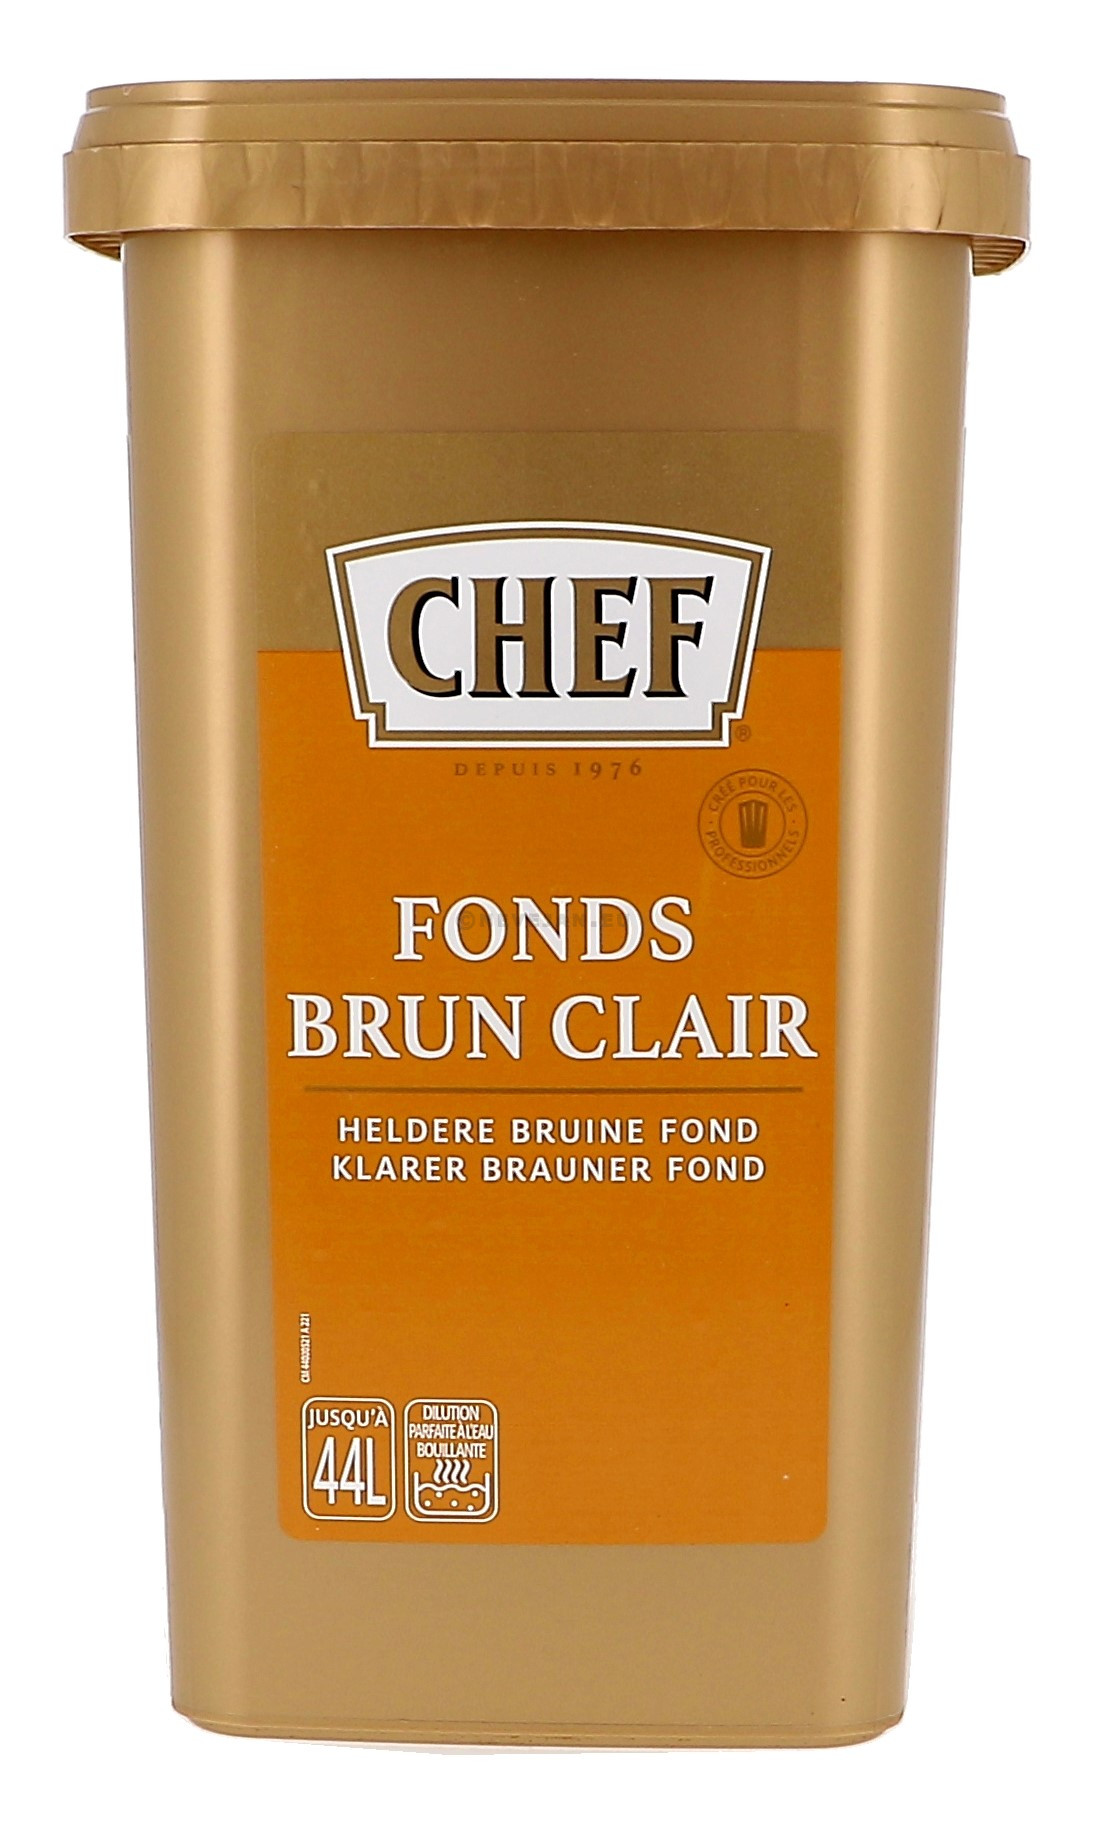 Chef fonds brun clair 880gr Nestlé Professional (Chef)